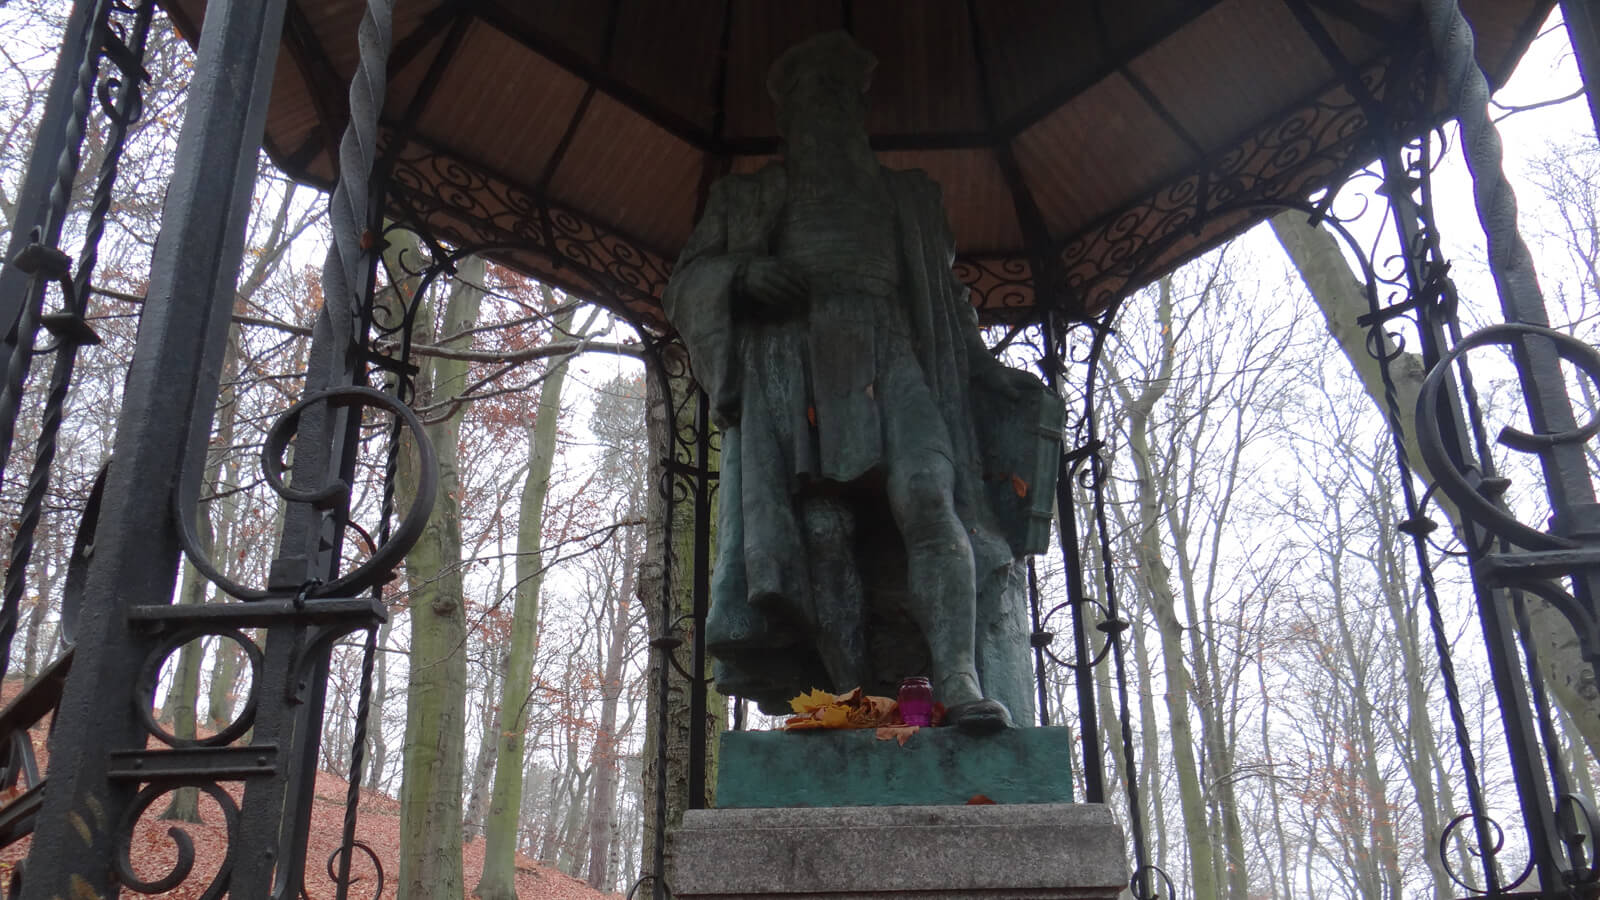 While on a walk in the Jaskowa Dolina forests in Wrzeszcz, you can encounter the Gutenberg monument.